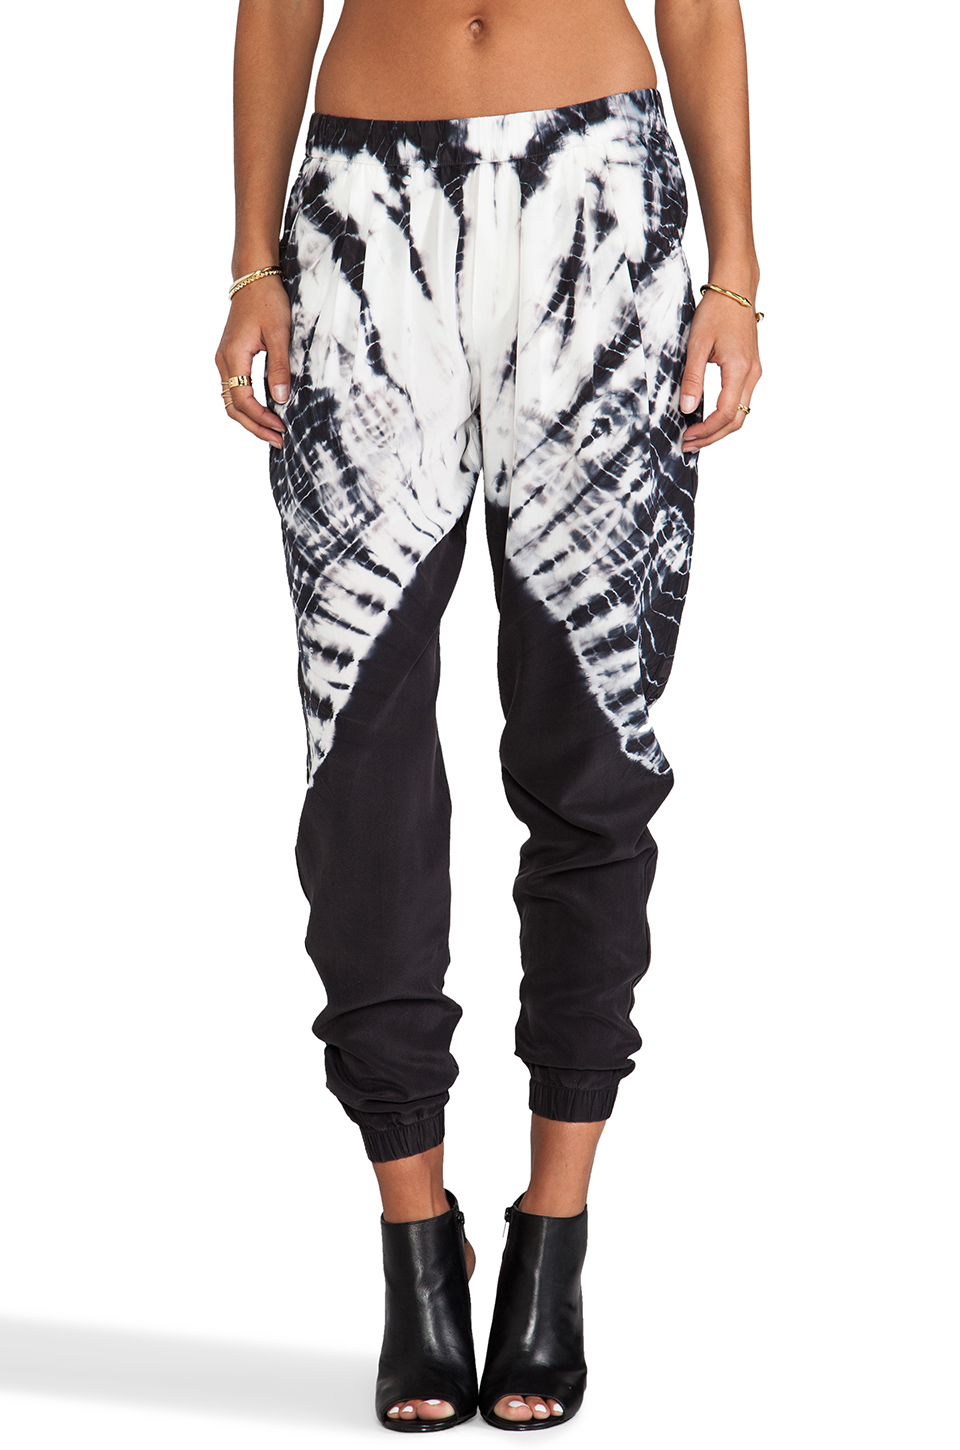 these pants from revolve clothing are a little similar to the harem pants from free people and now that i look at both, i can't really decide which to buy! i'm obviously not going to have two similar tie dye pants so i have to pick. help!!! comment below and let me know which ones i should purchase.